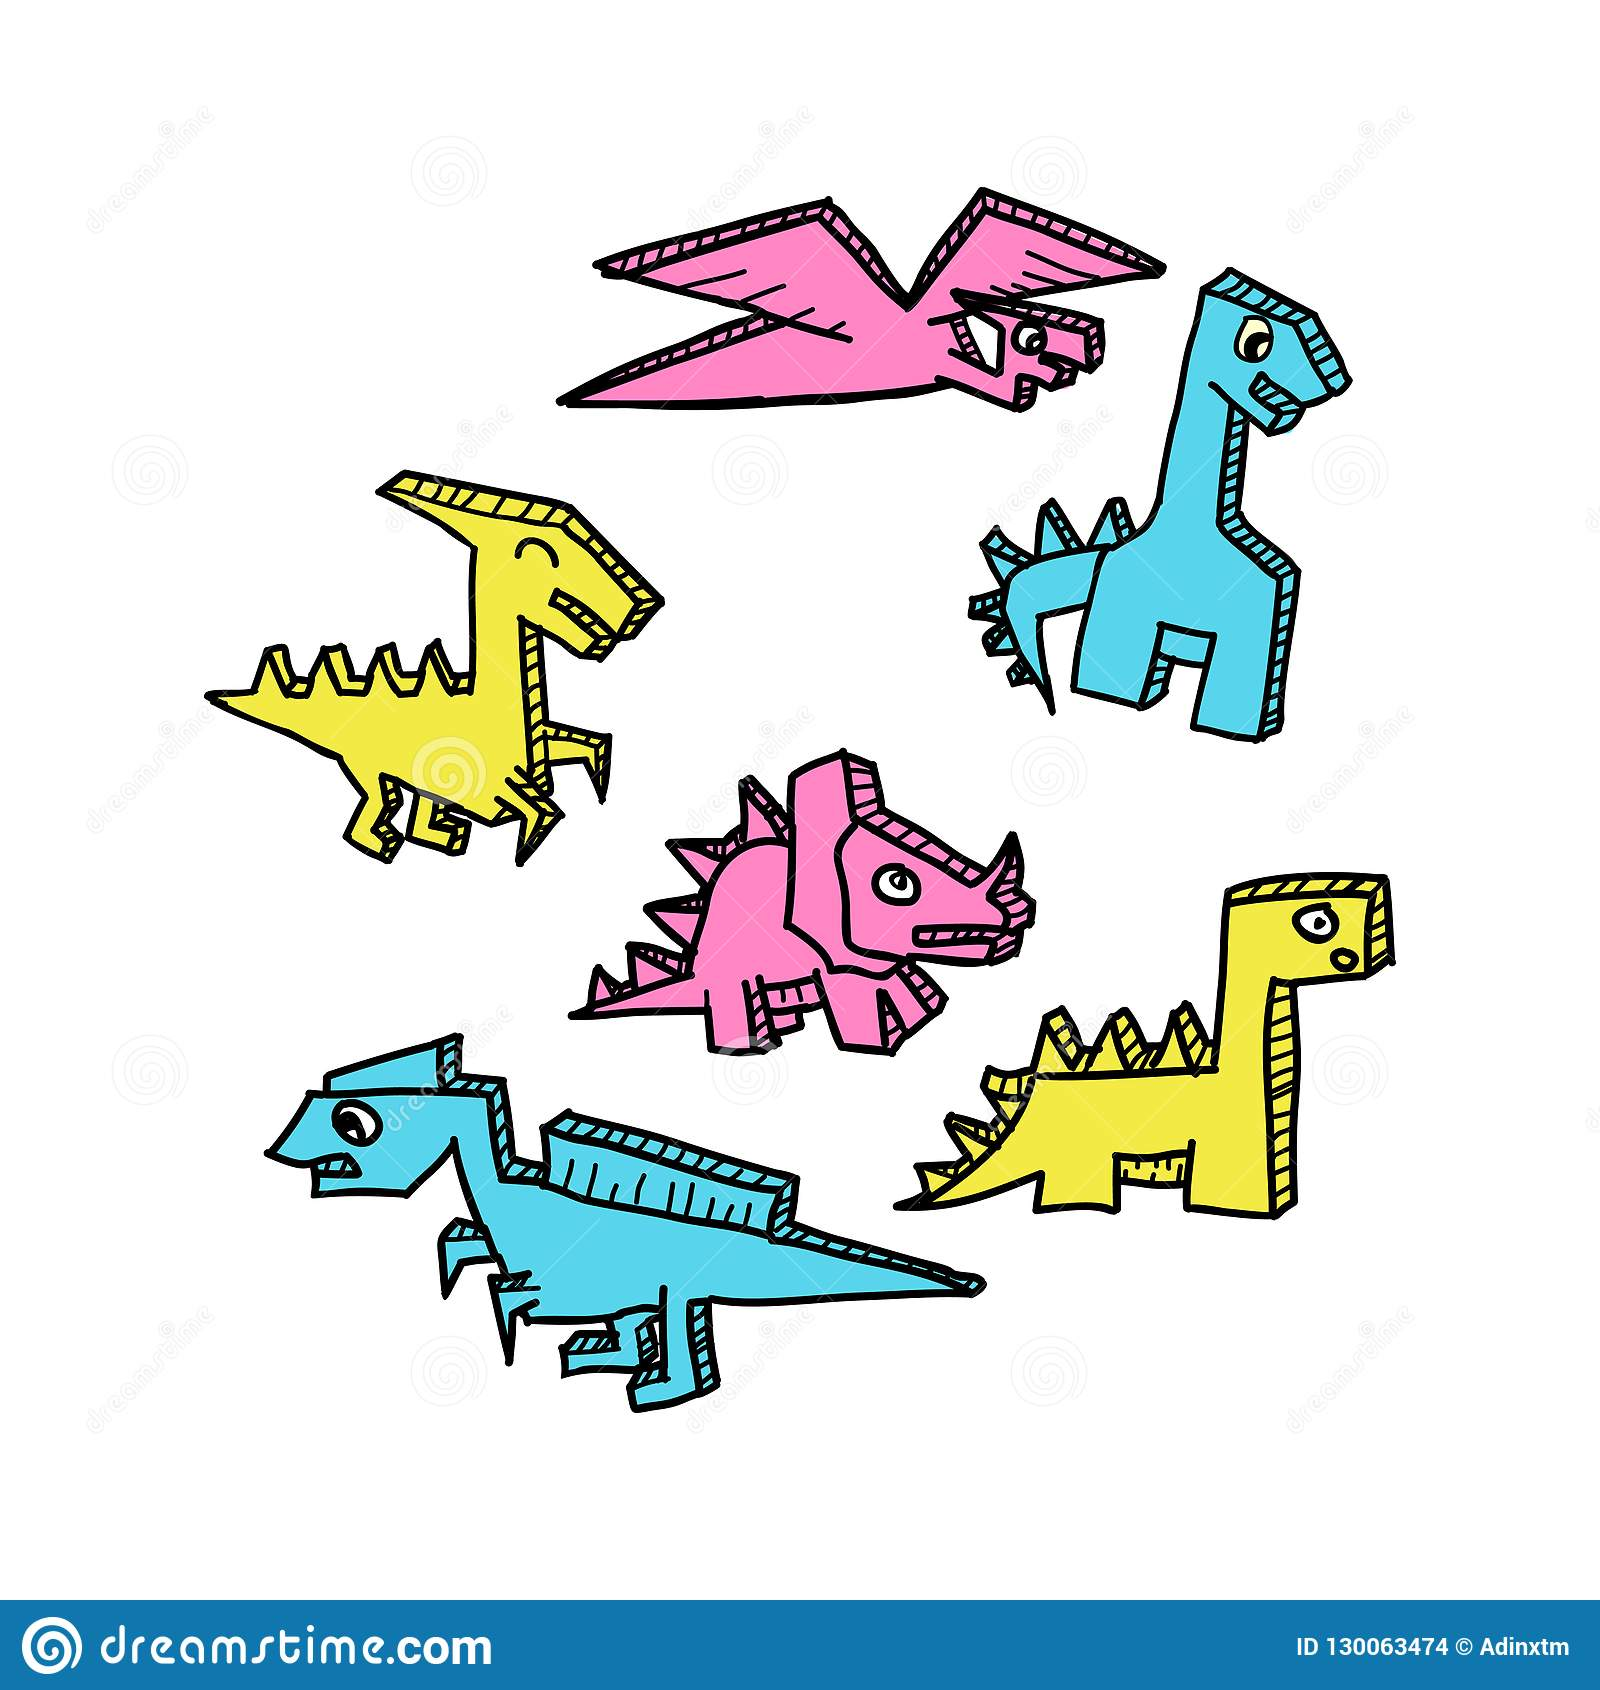 Colorful Dino drawing 3d style set vector illustration.